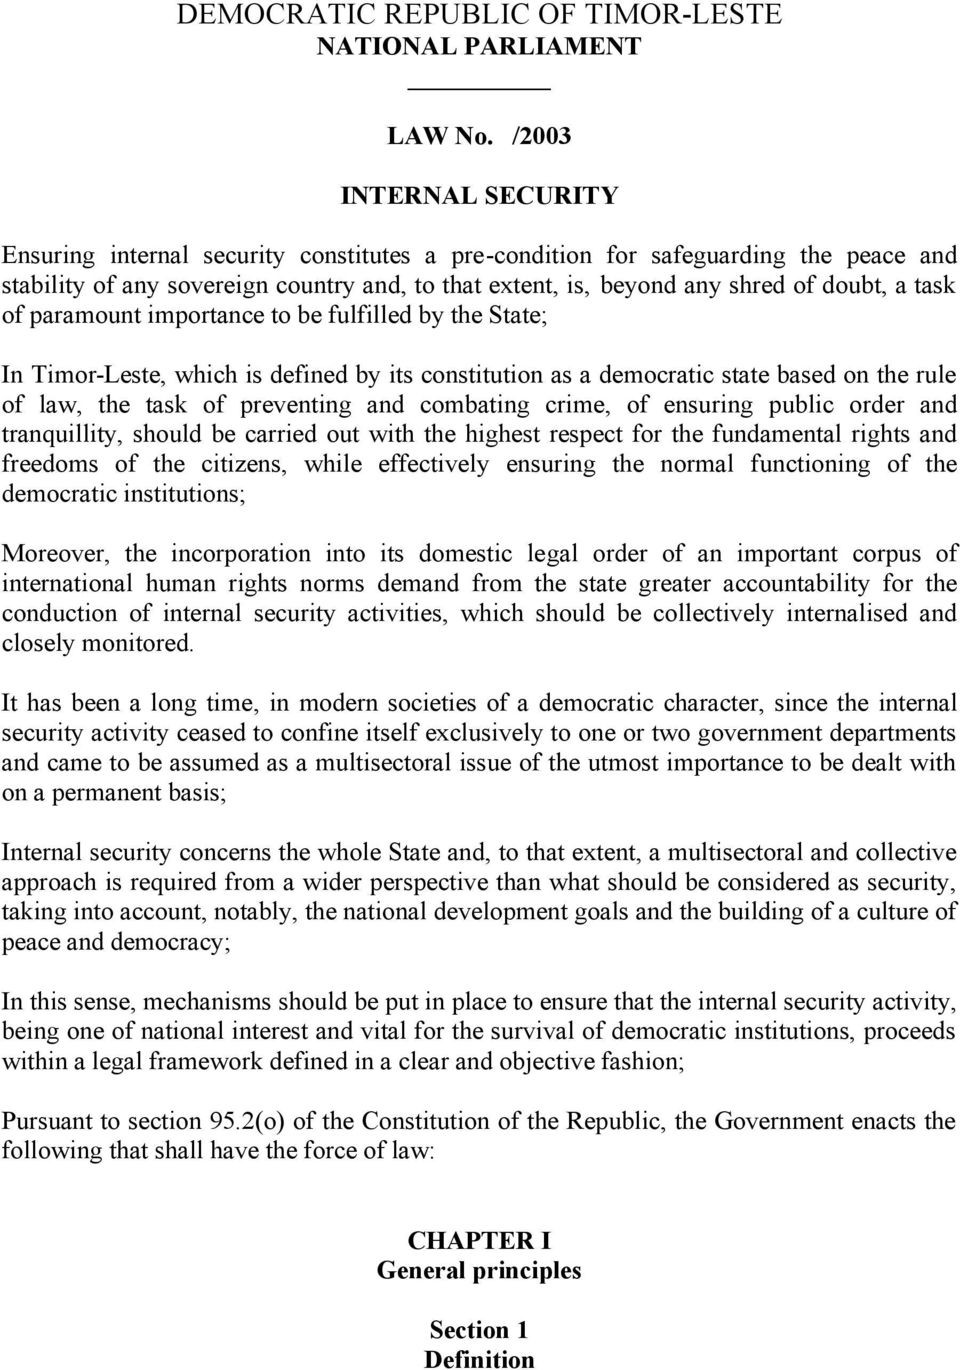 task of paramount importance to be fulfilled by the State; In Timor-Leste, which is defined by its constitution as a democratic state based on the rule of law, the task of preventing and combating